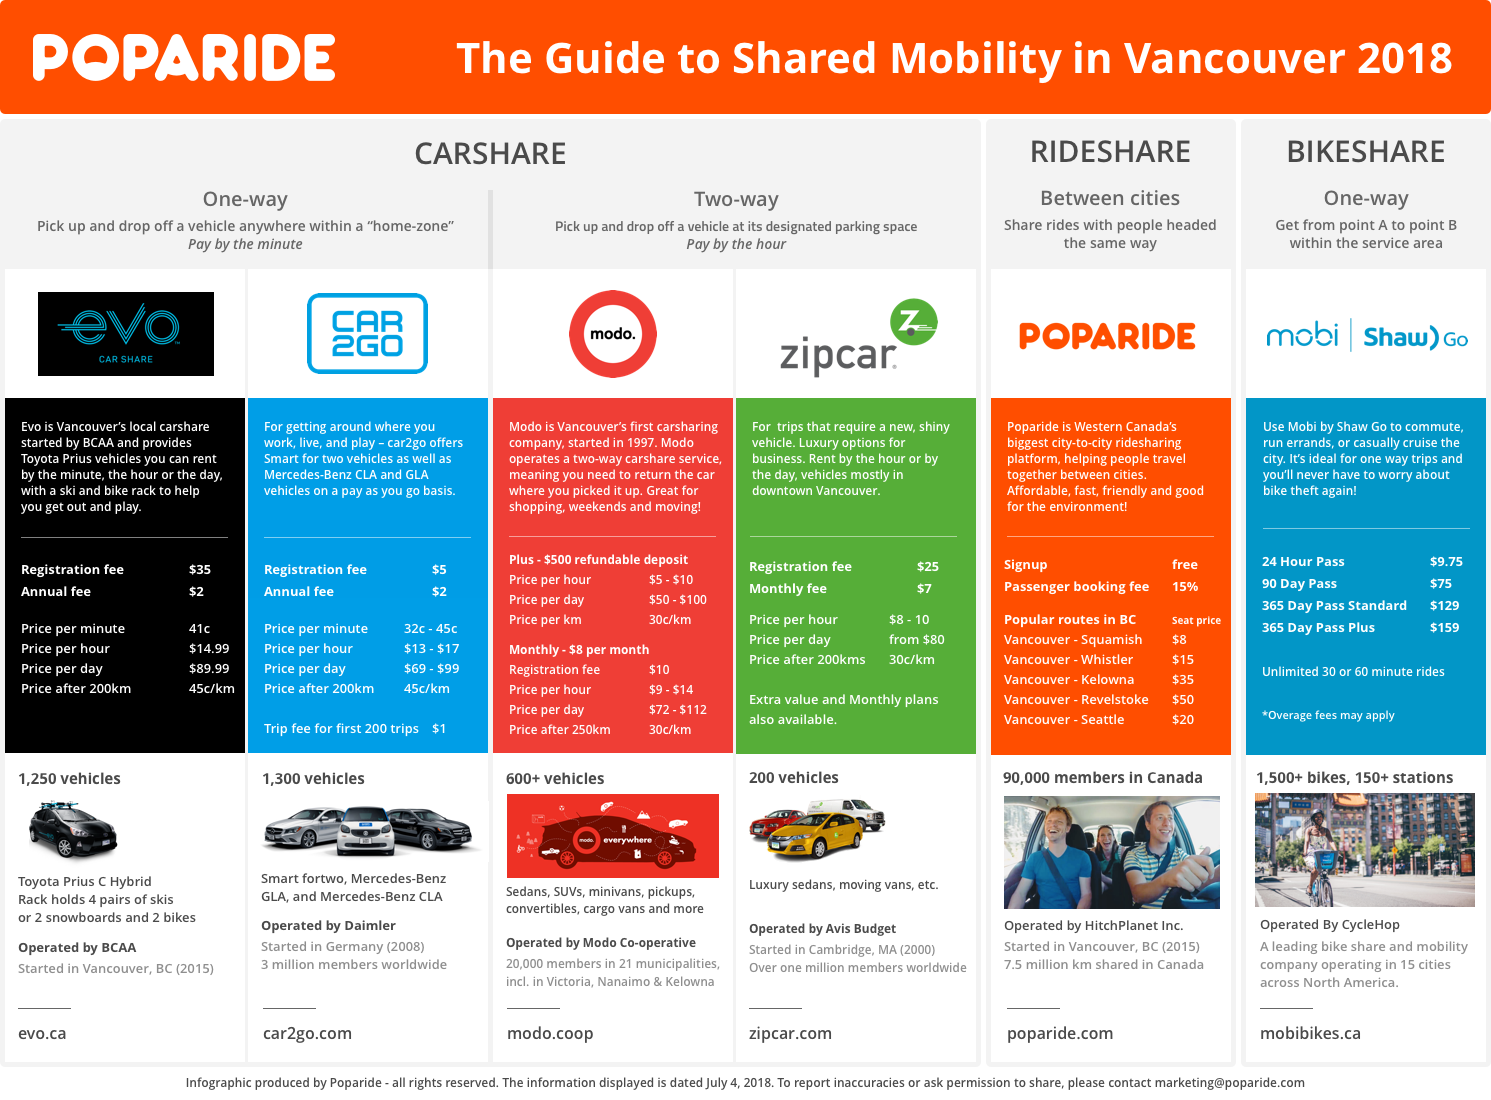 Poparide Guide to Shared Mobility in Vancouver 2018